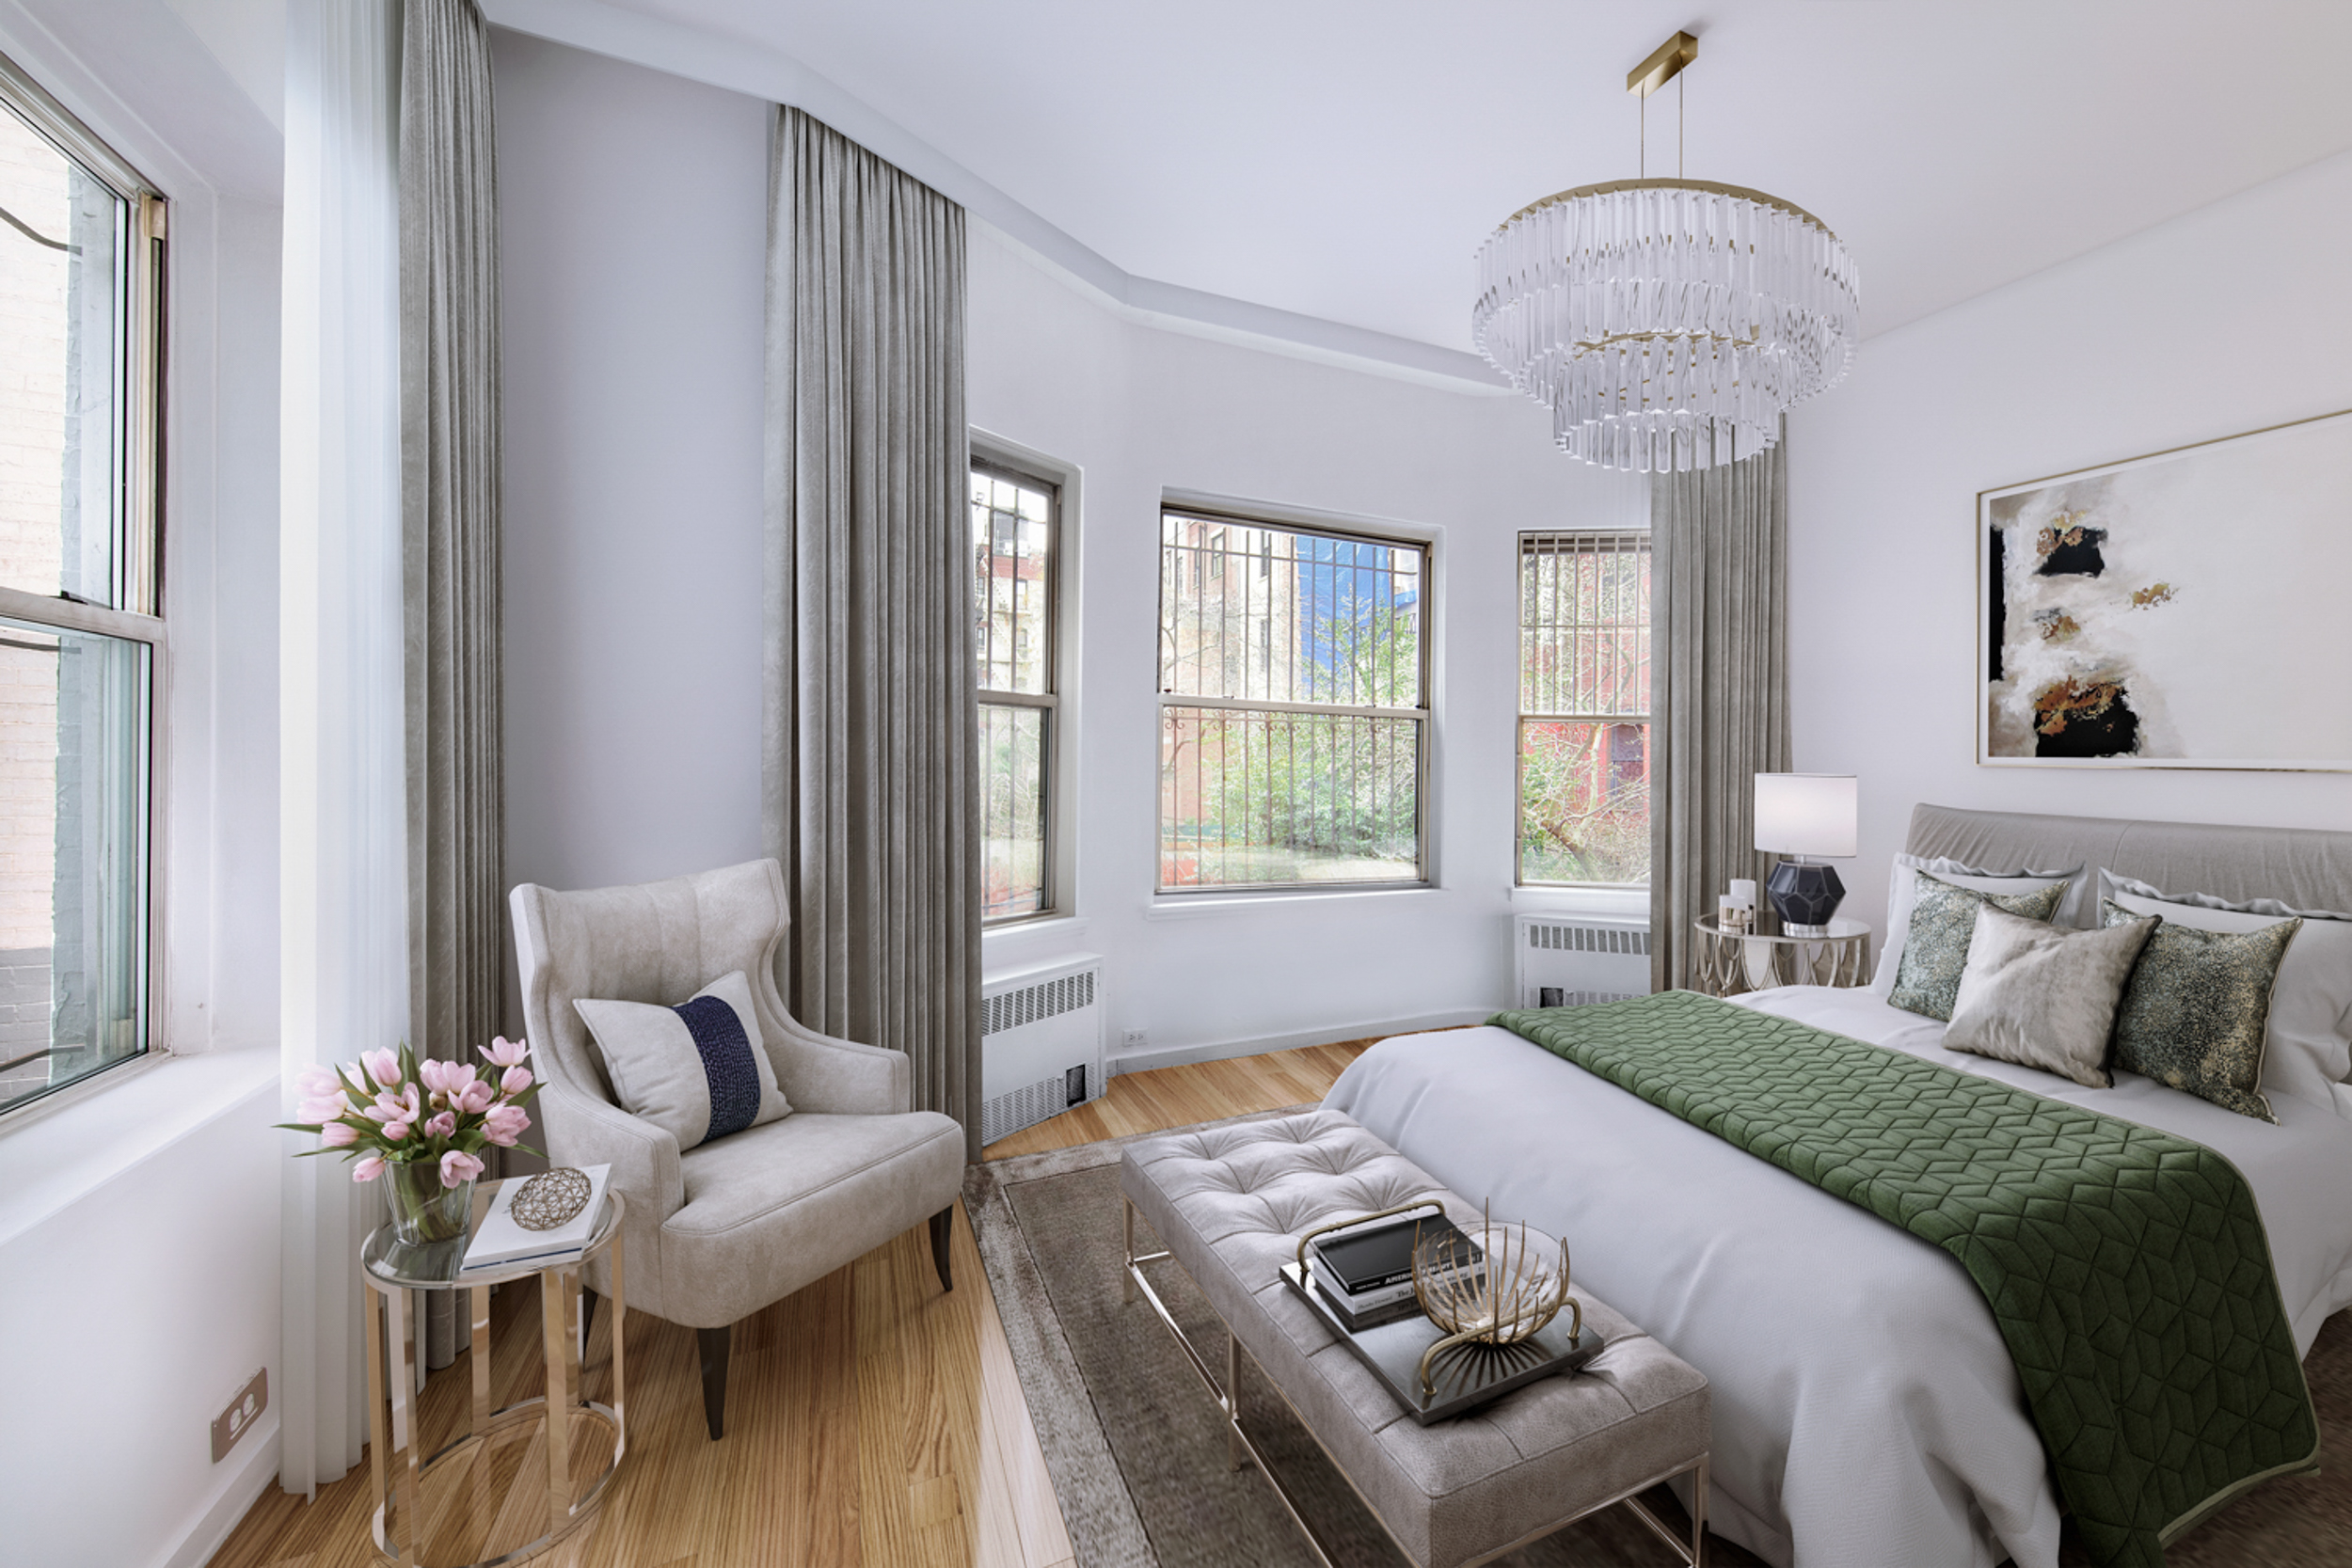 Bedroom- After Virtual Staging